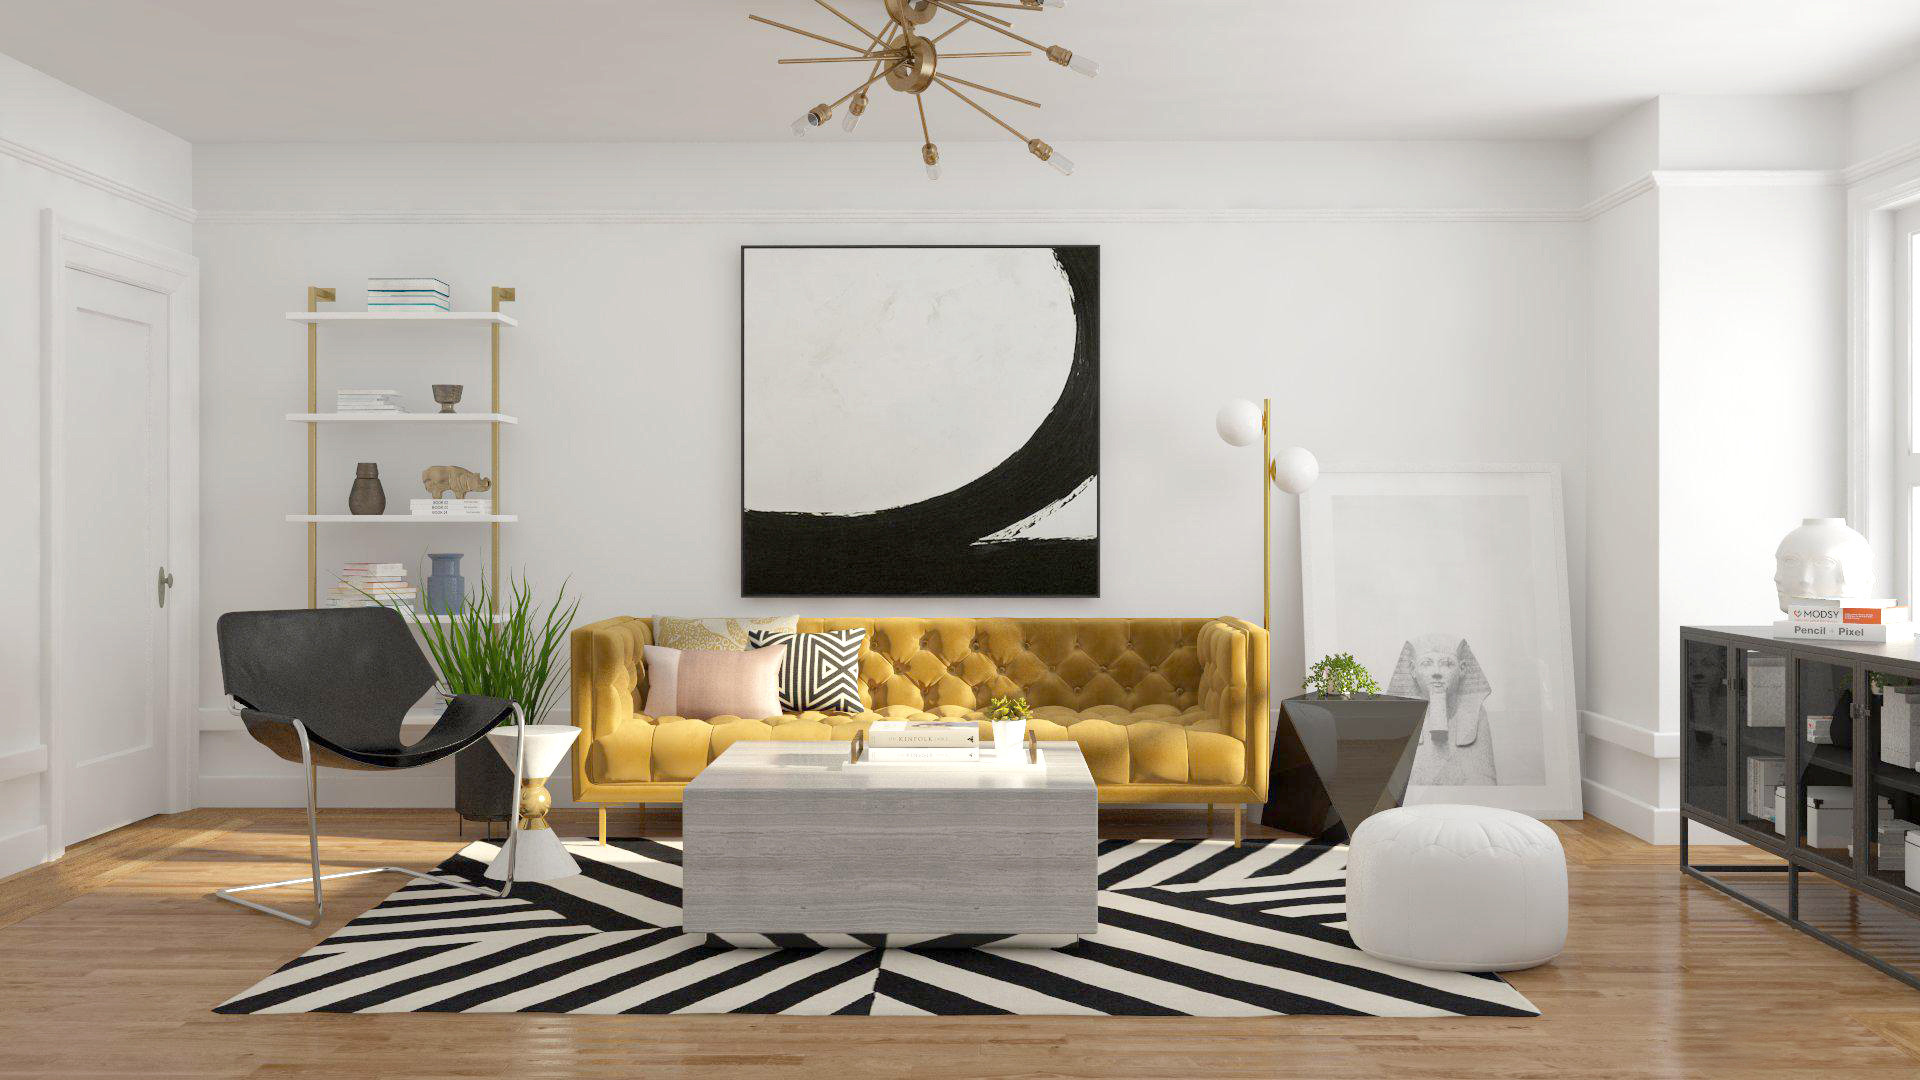 18 home decor and design trends we 39 ll be watching in 2018 - Home design trends 2019 ...